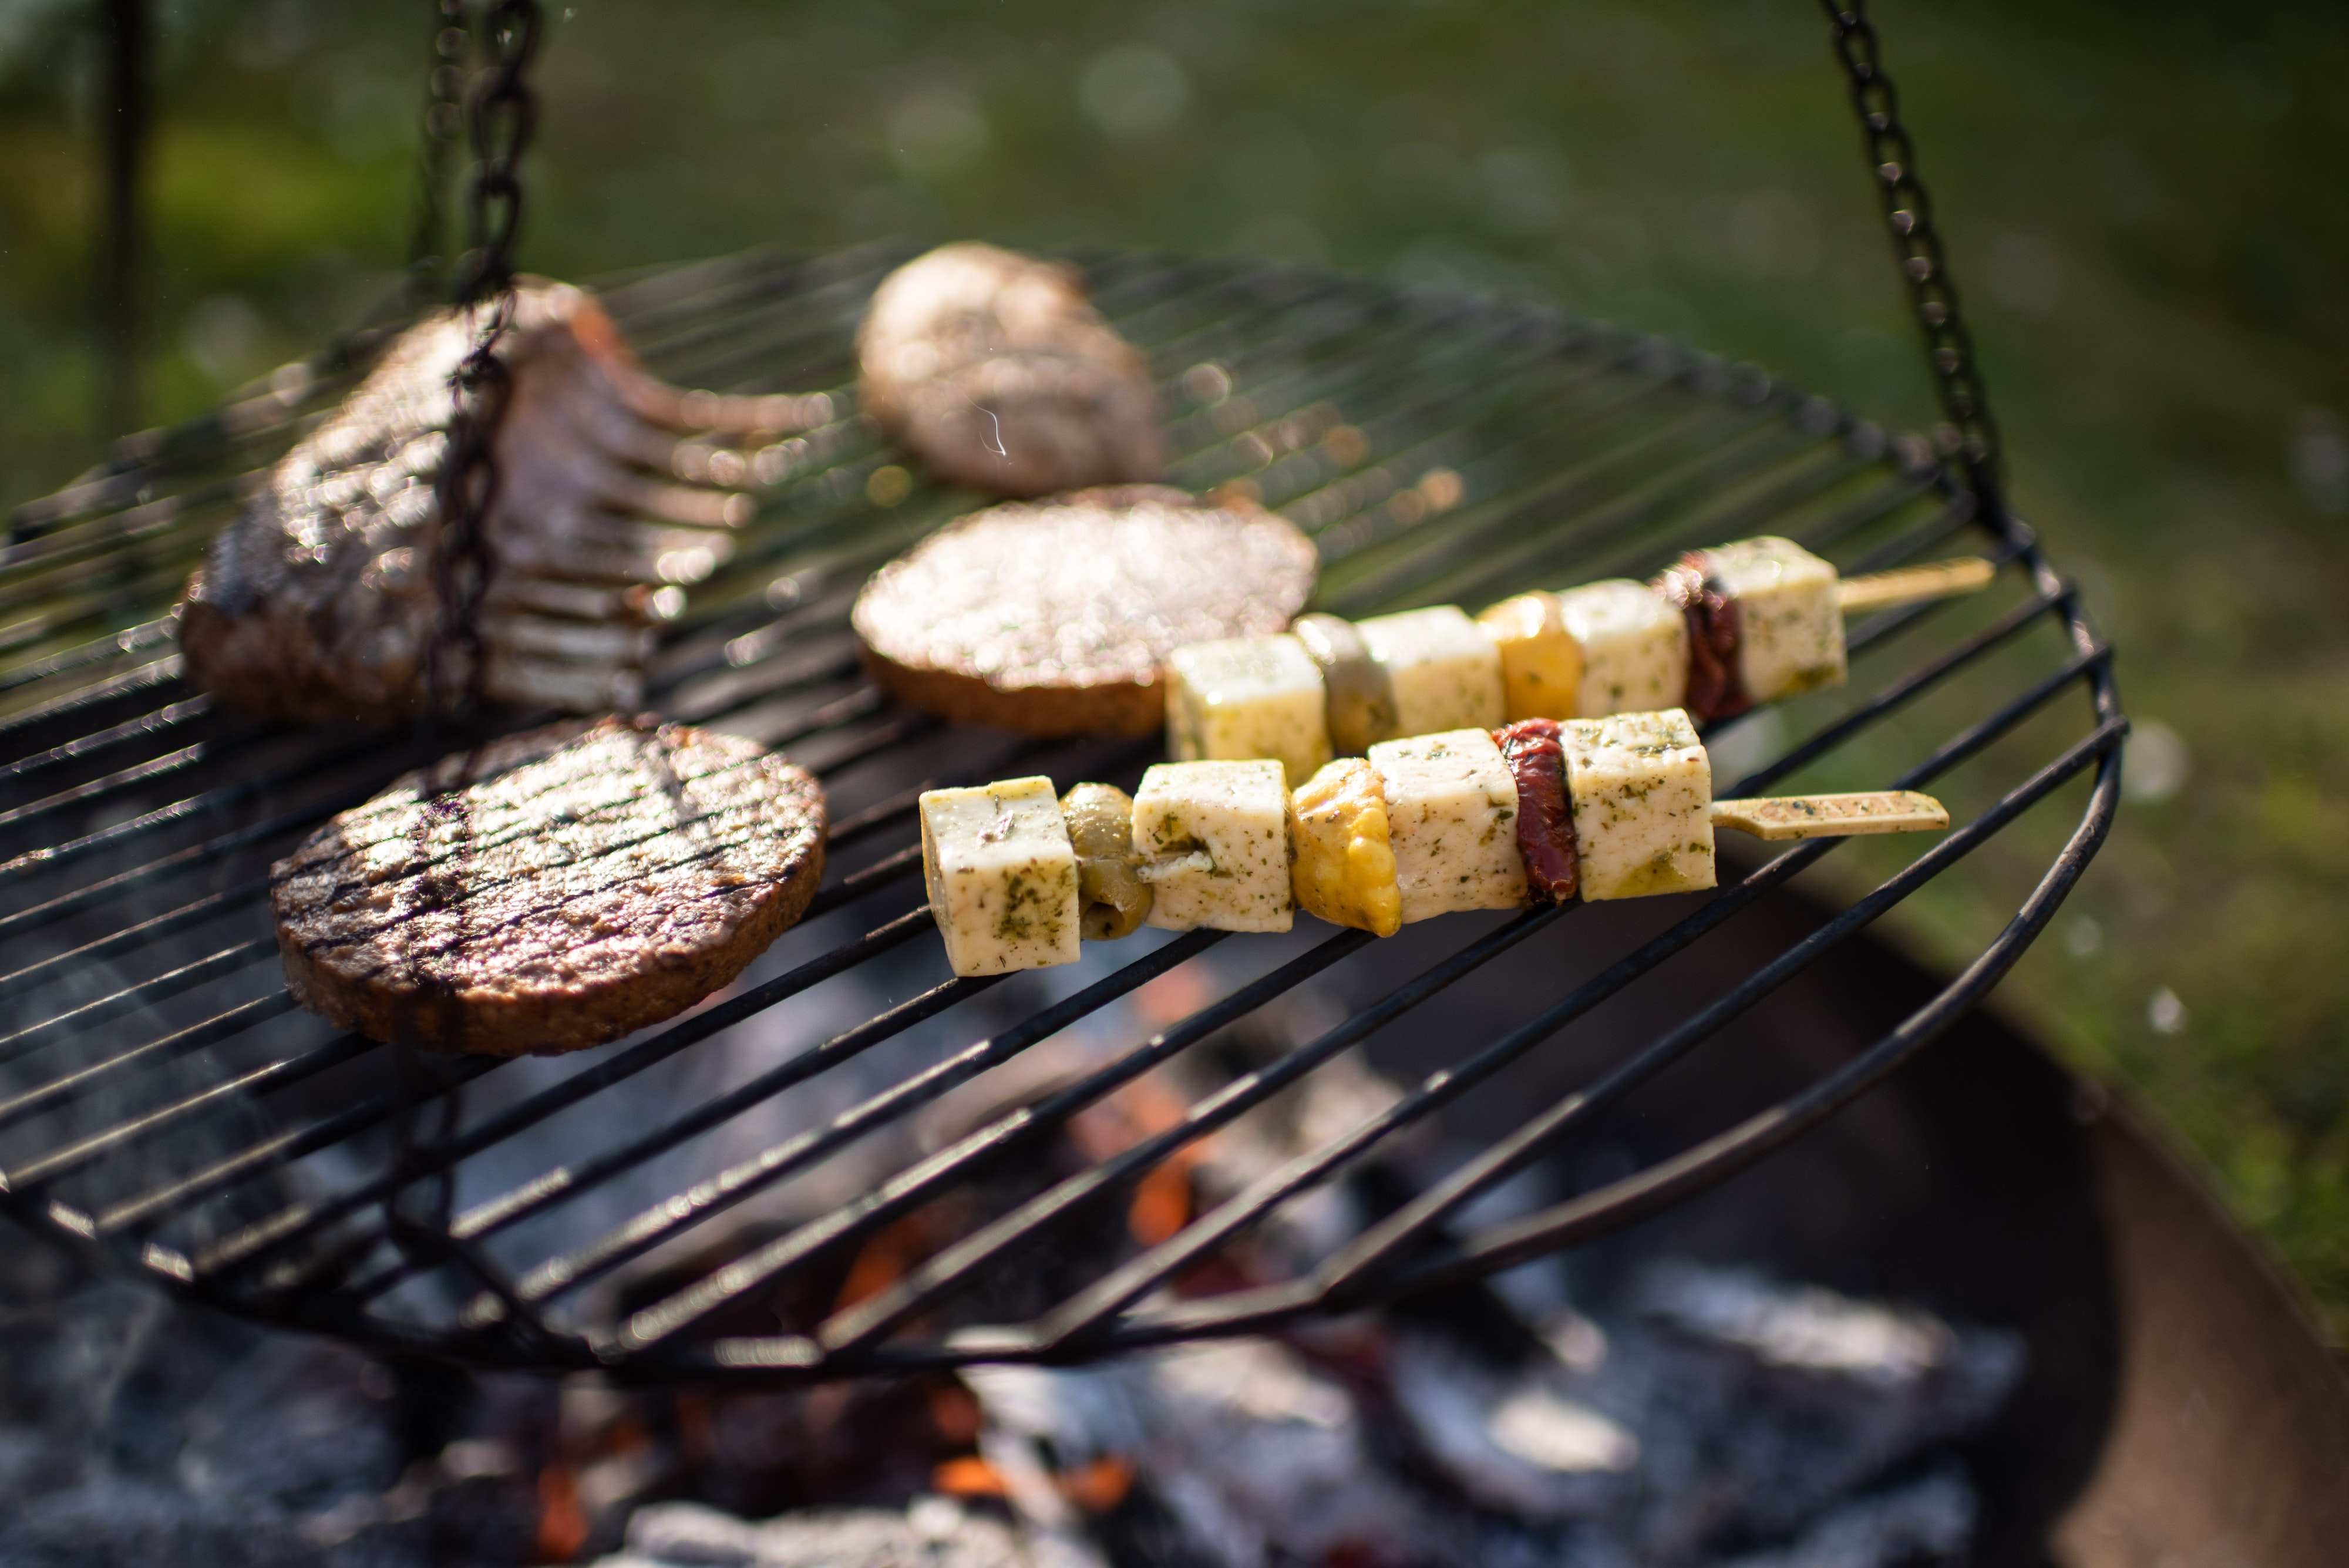 Grill in spring over the fire